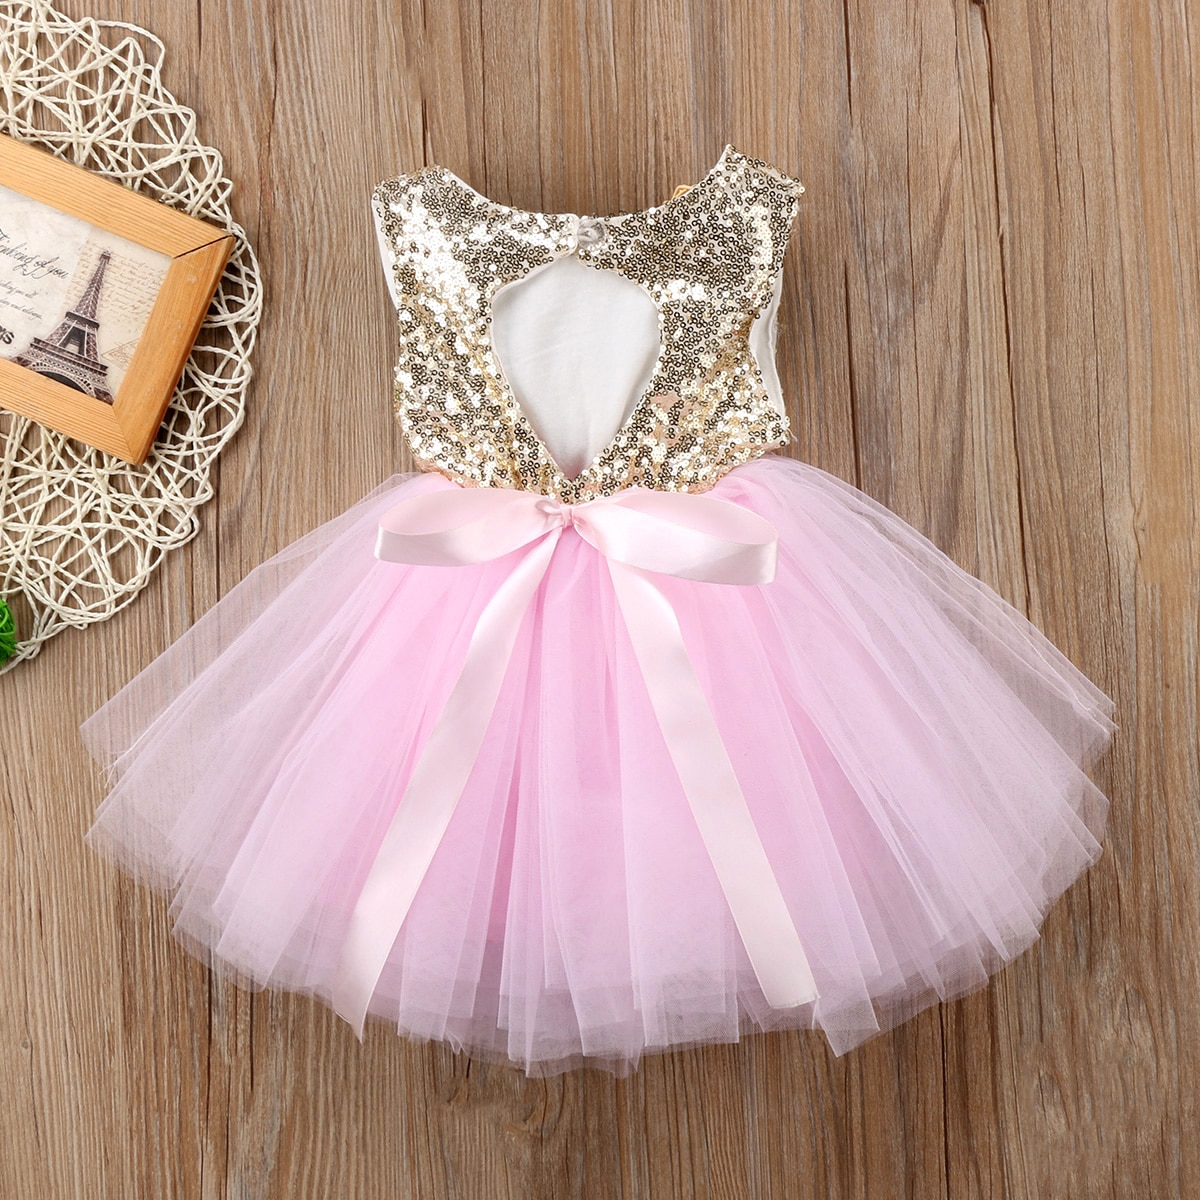 Princess Kids Baby Dress For Girls Fancy Wedding Dress Sleeveless Sequins Party Birthday Baptism Dre